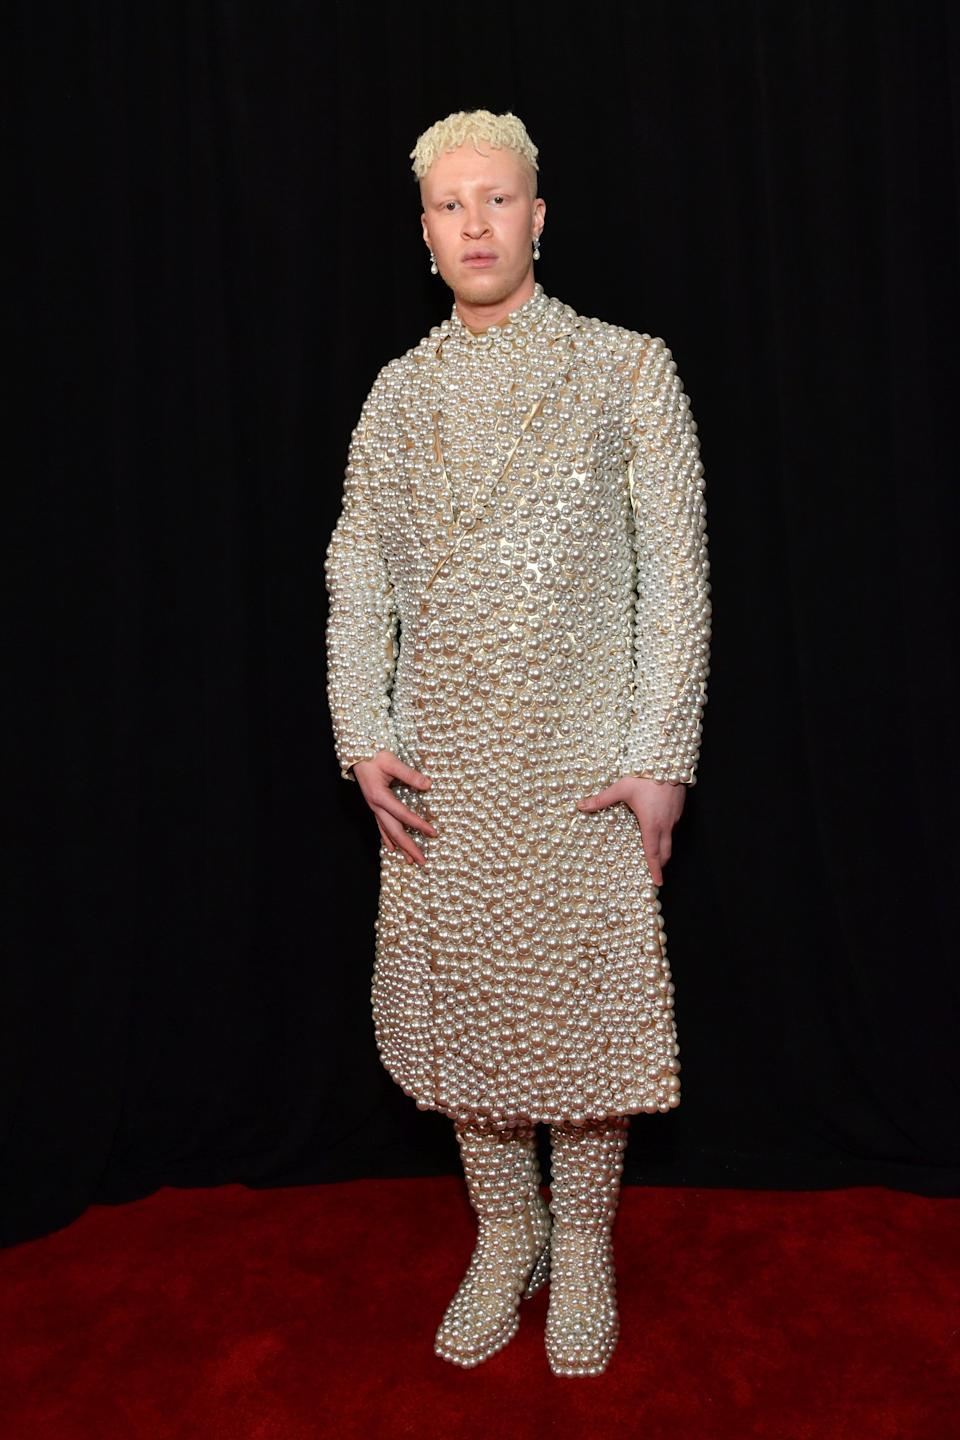 The singer and model wore an outfit covered head-to-toe in pearls, surely one of the night's most opulent looks.